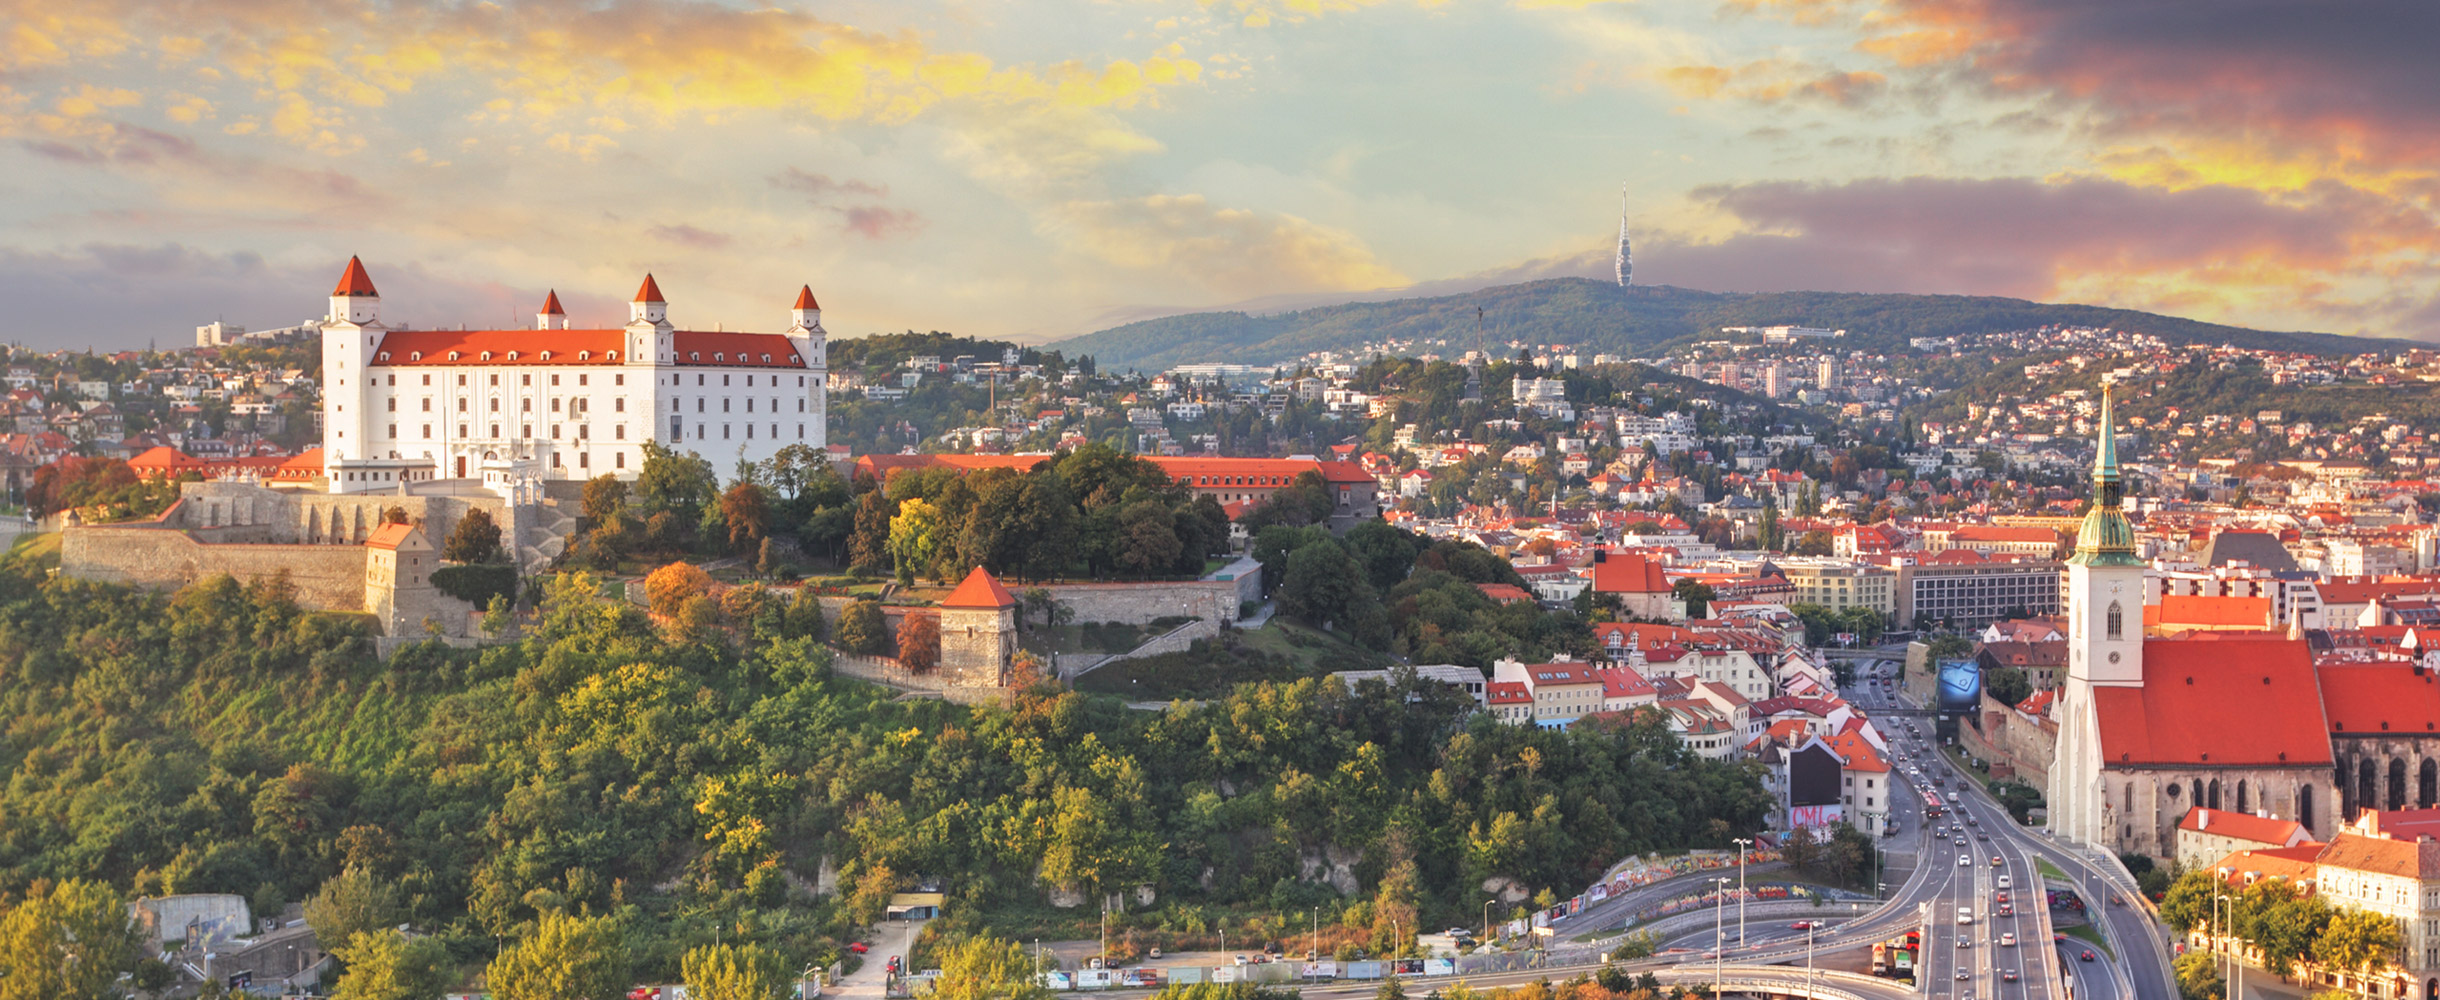 13th ENYSSP CONFERENCE in BRATISLAVA, Slovakia. 5th - 7th October 2017